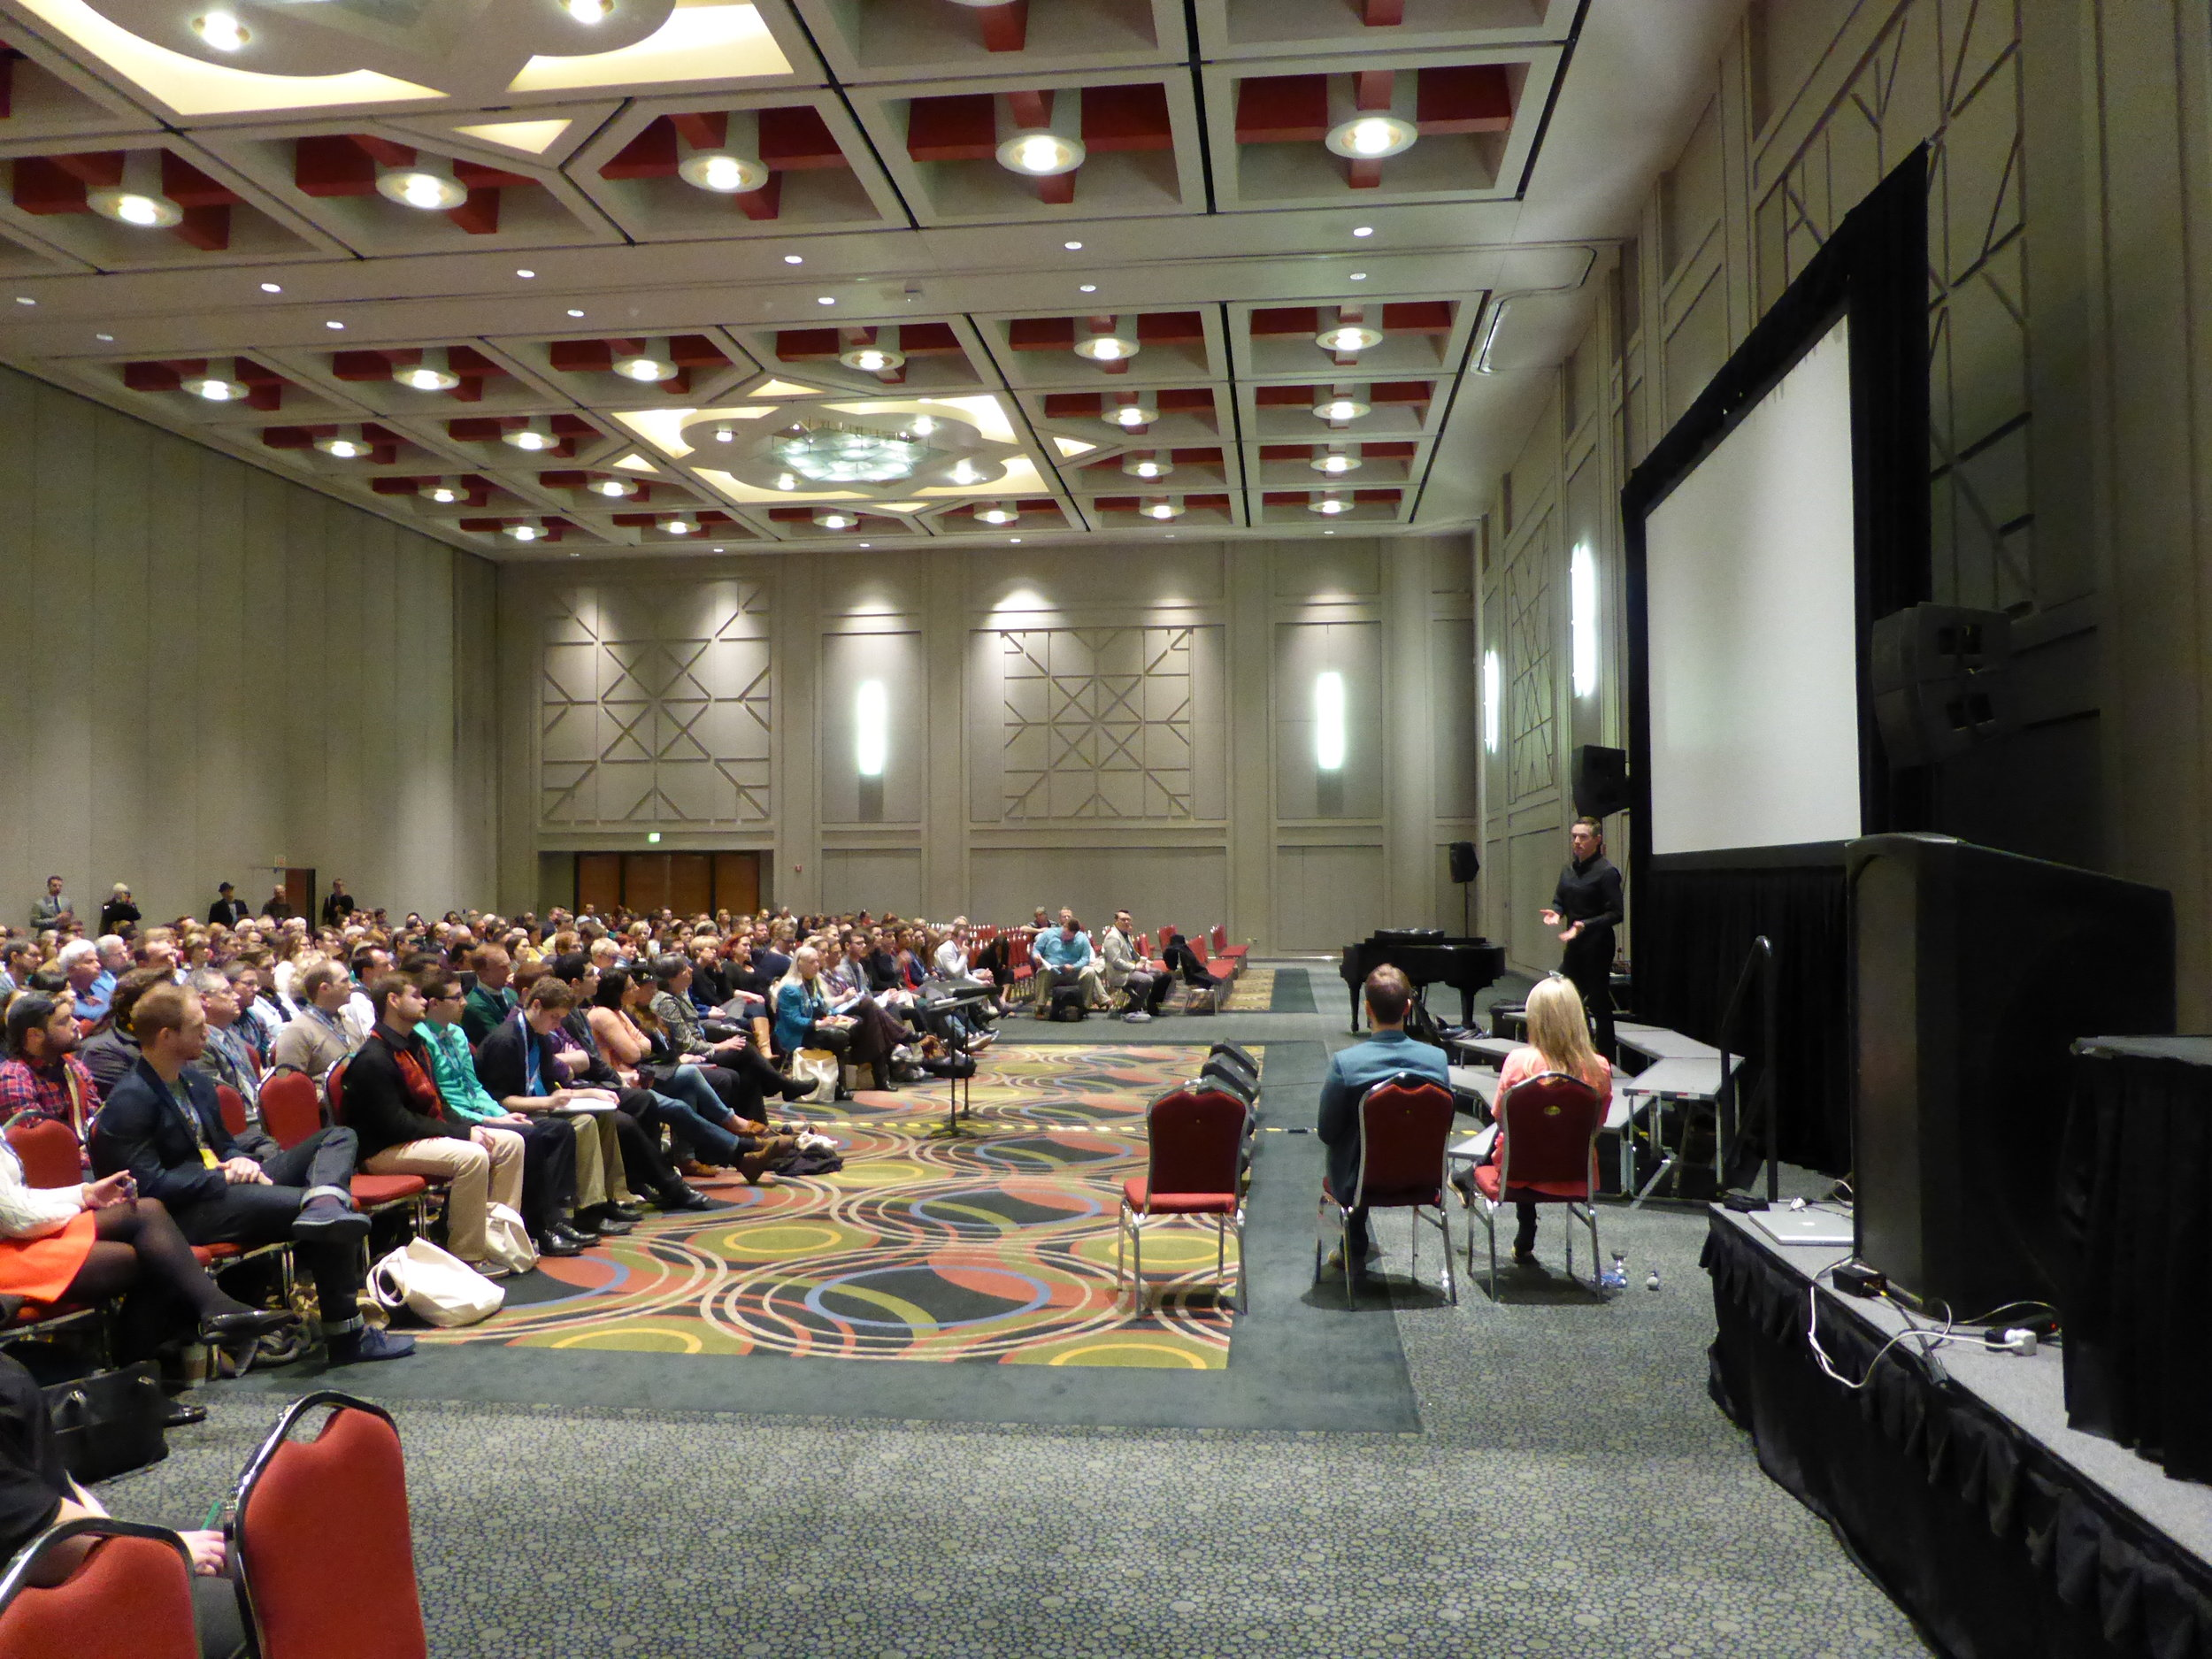 Michael presenting at the American Choral Directors Association National Conference March 2015